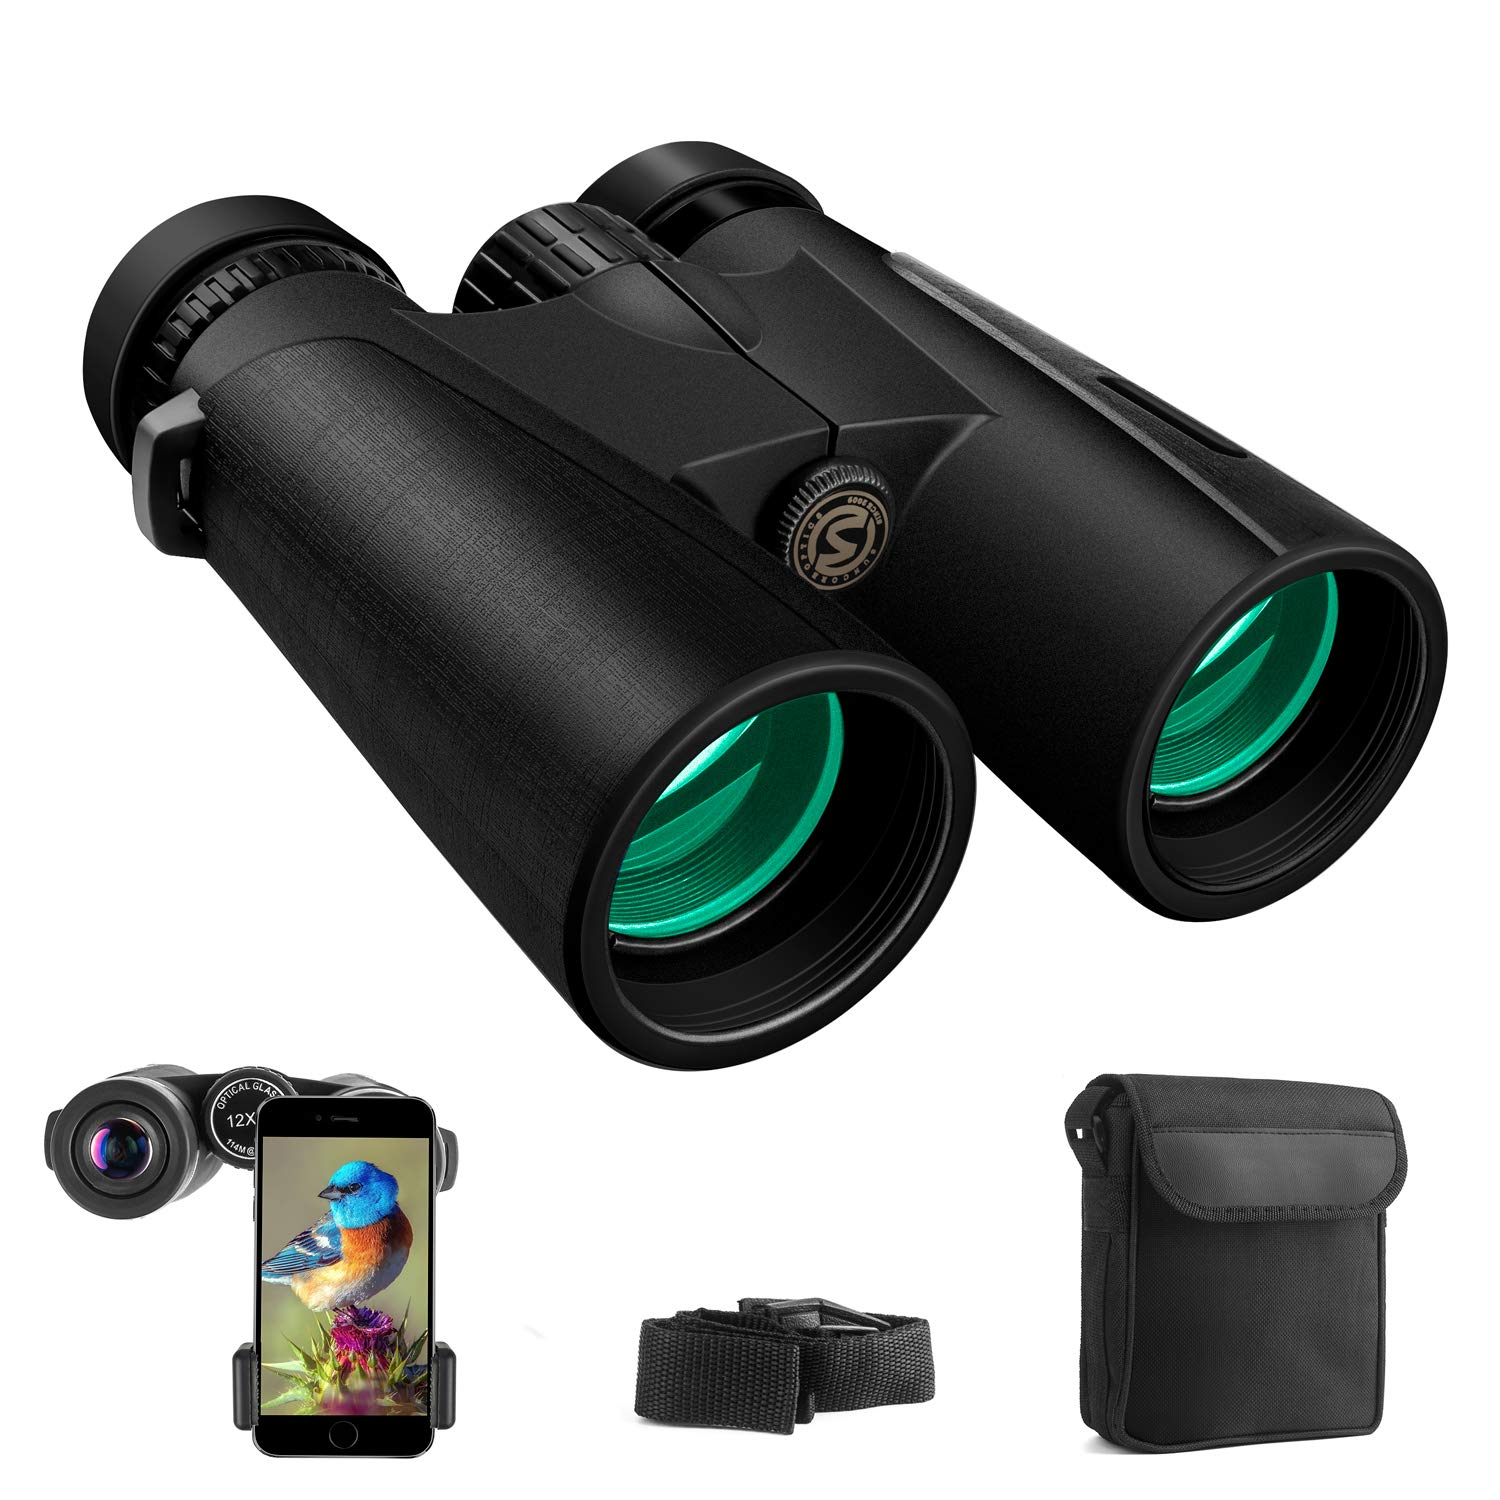 Cayzor 12x42 Binoculars for Adults Compact HD Clear Weak Light Vision Bird Watching - Professional for Travel Stargazing Hunting Concerts Sports - BAK4 Prism FMC Lens Phone Mount Strap Carrying Bag